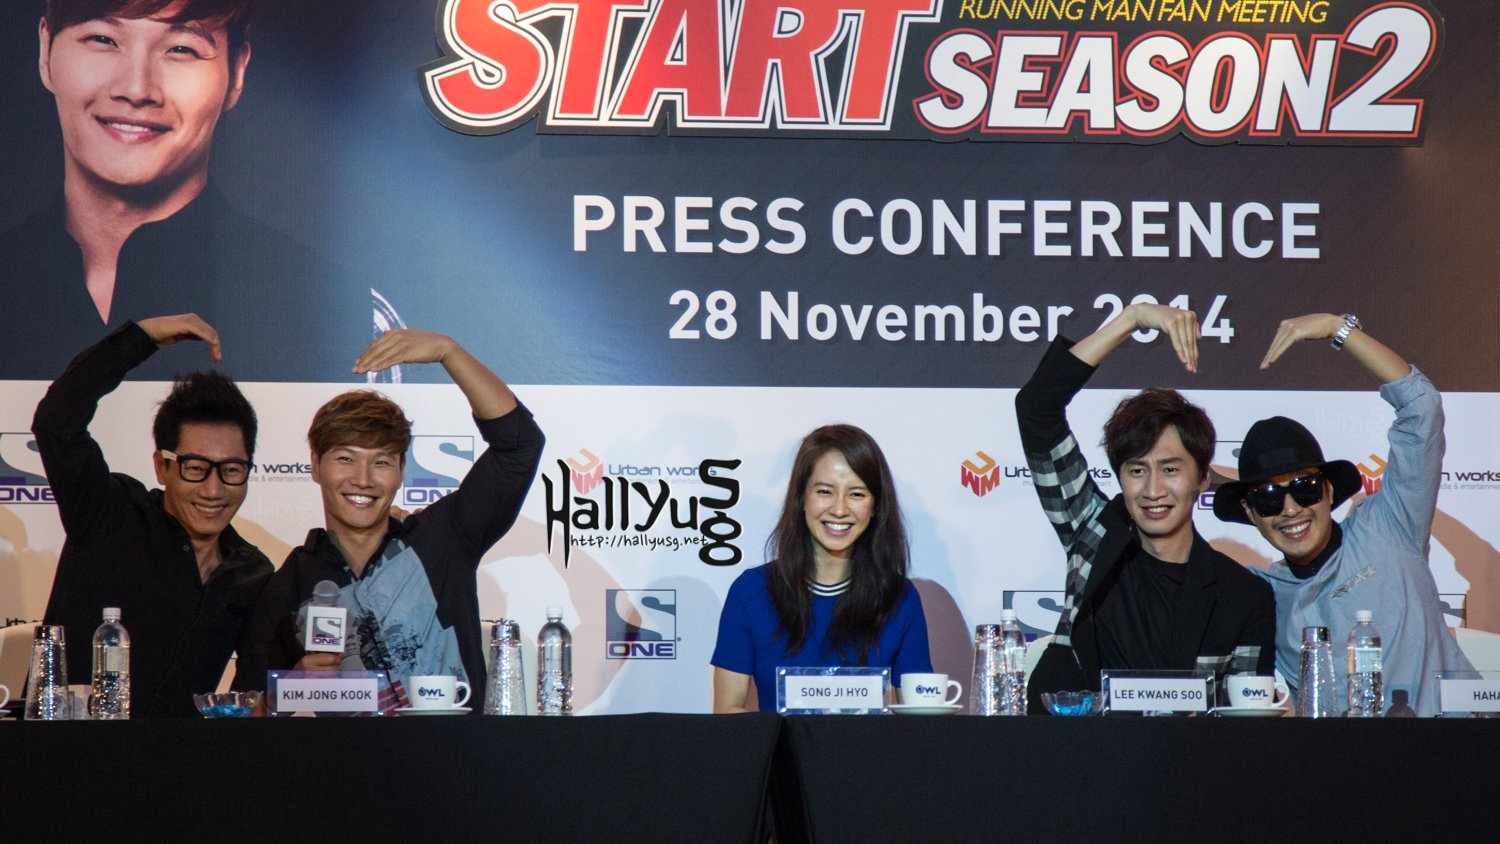 PHOTOS] Running Man's Appearance at Race Start Season 2 in Singapore